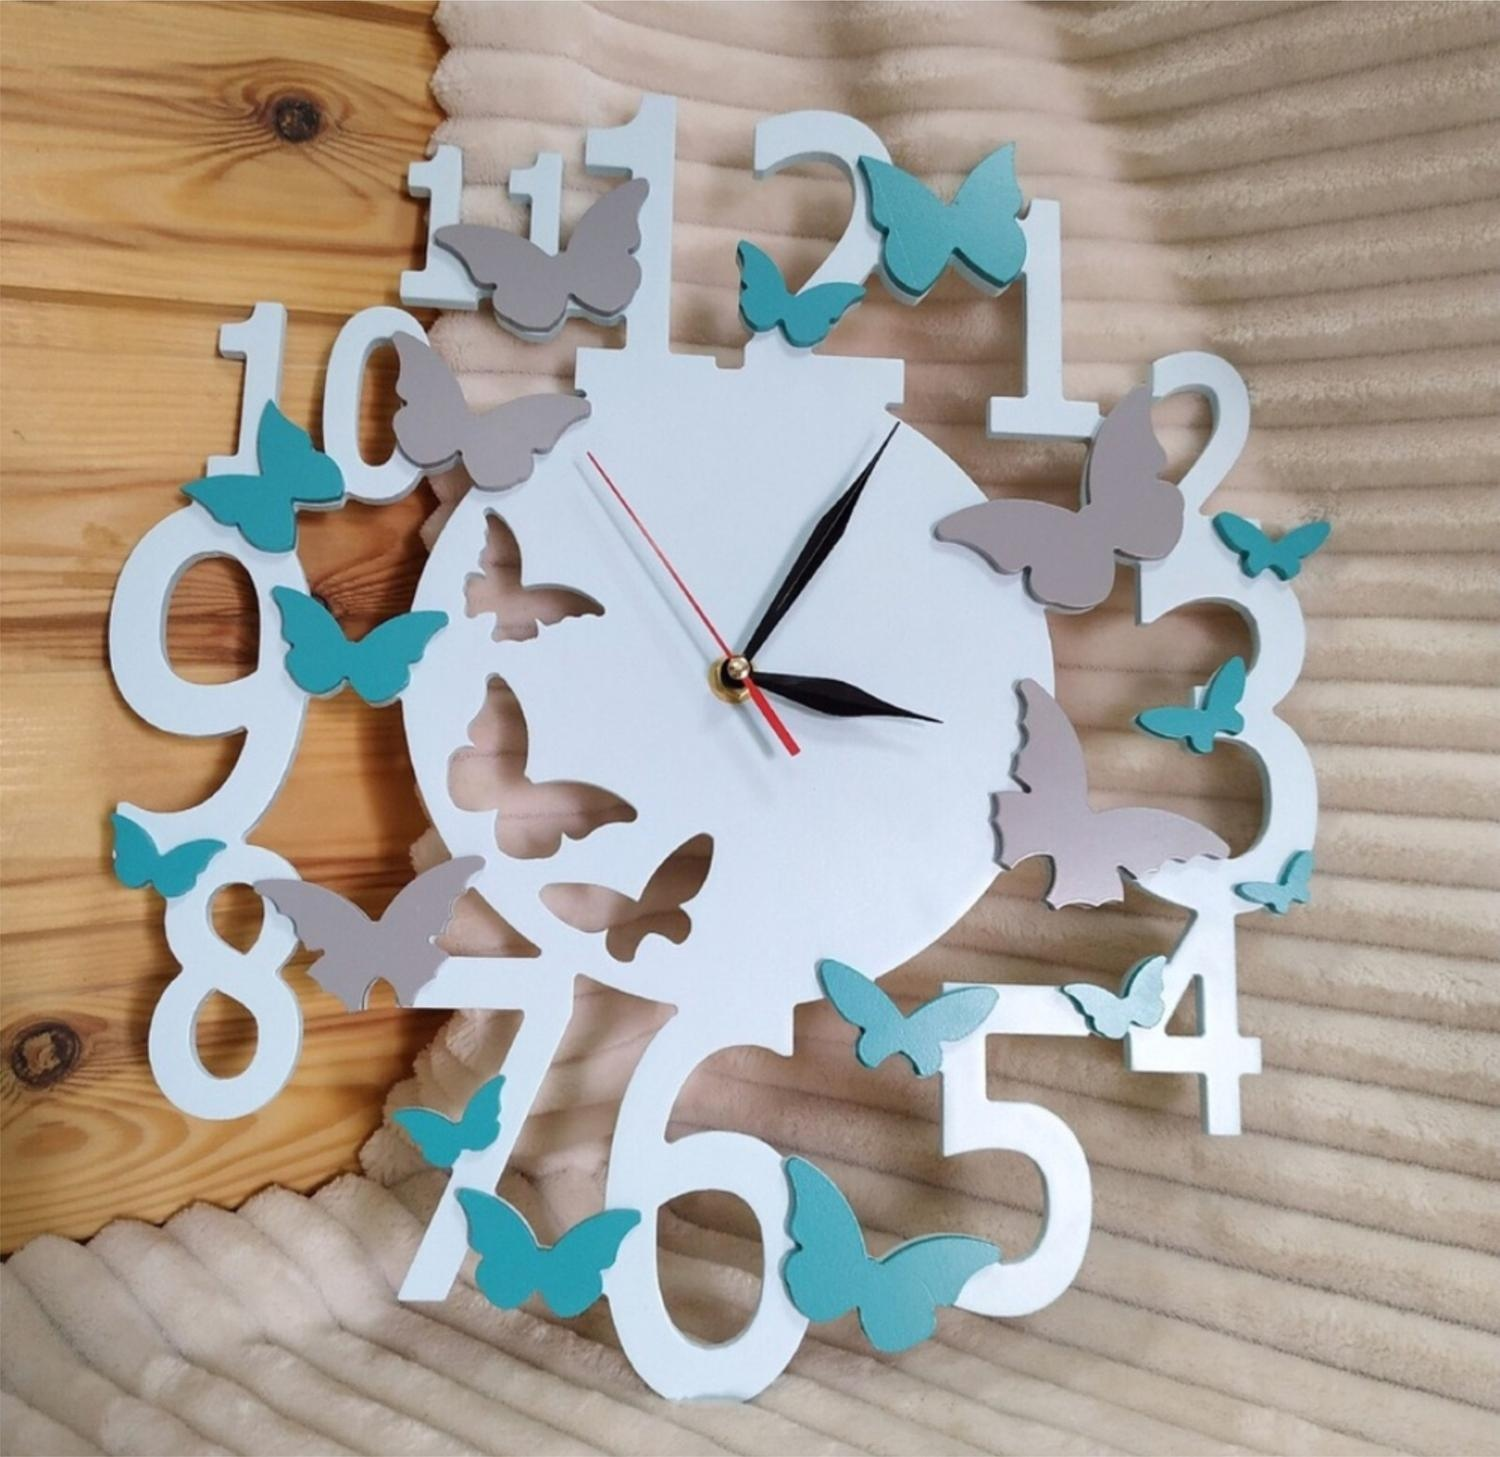 Laser Cut Decorative Wall Clock With Butterflies Free Vector